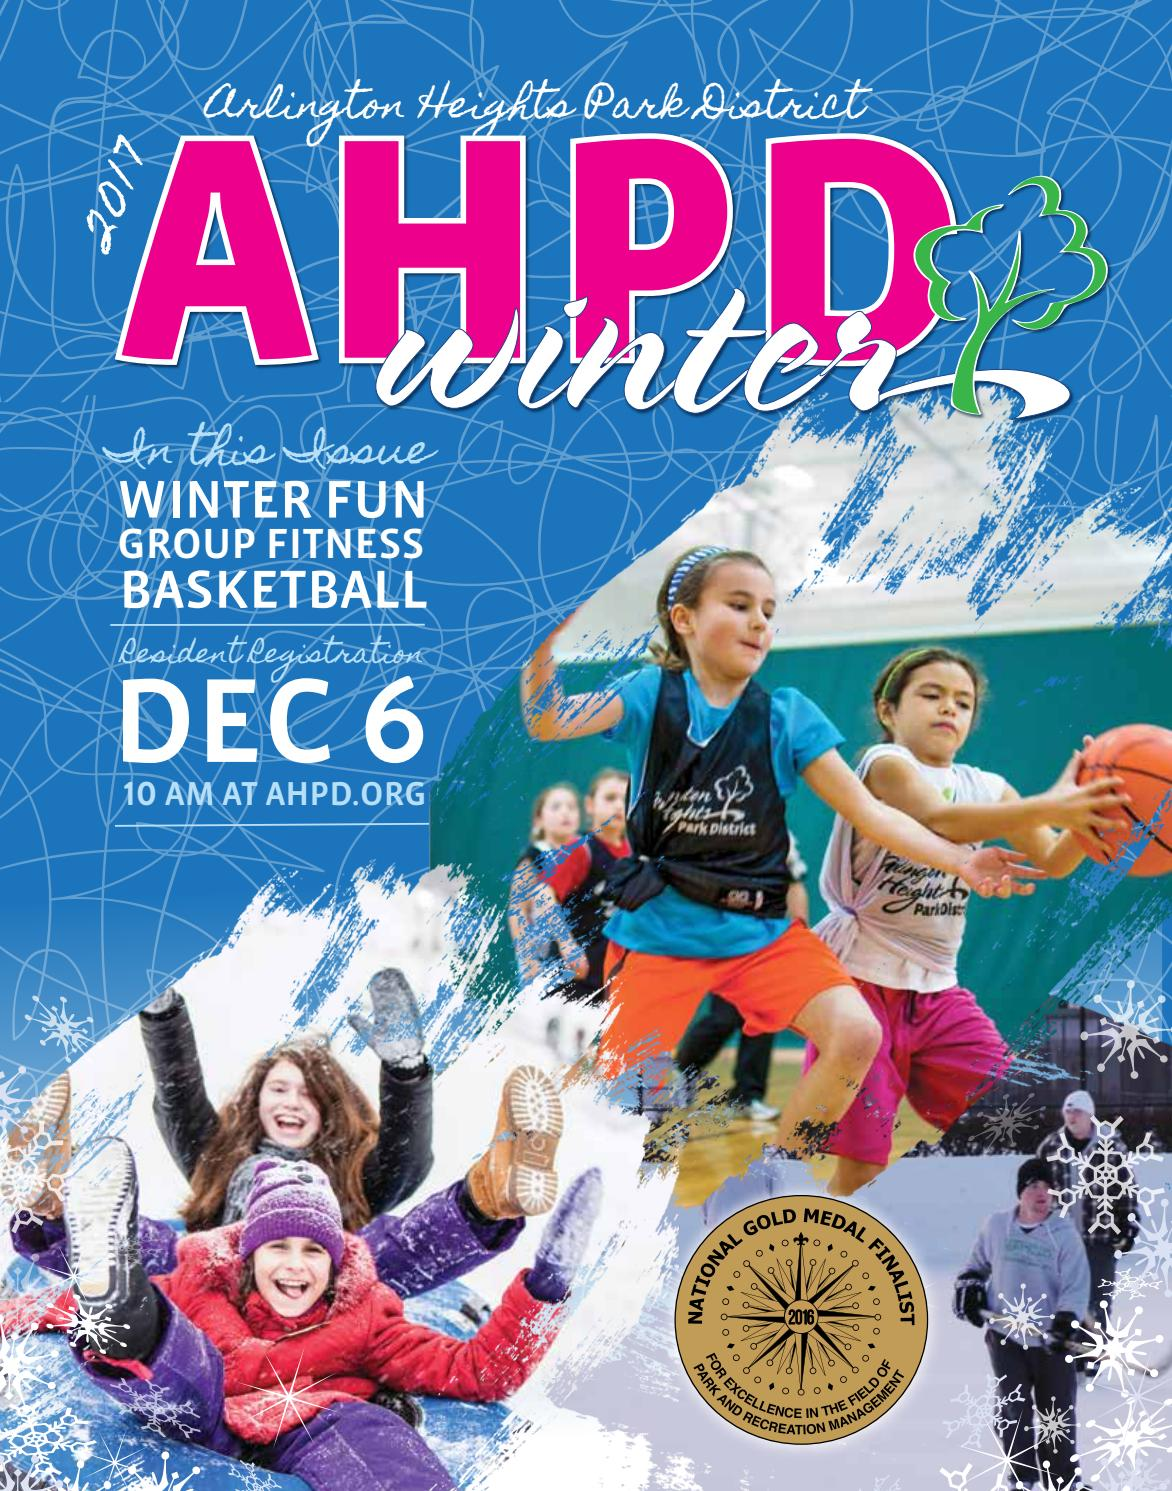 32b8cc4106e AHPD Winter 2017 Program Guide by Arlington Heights Park District - issuu